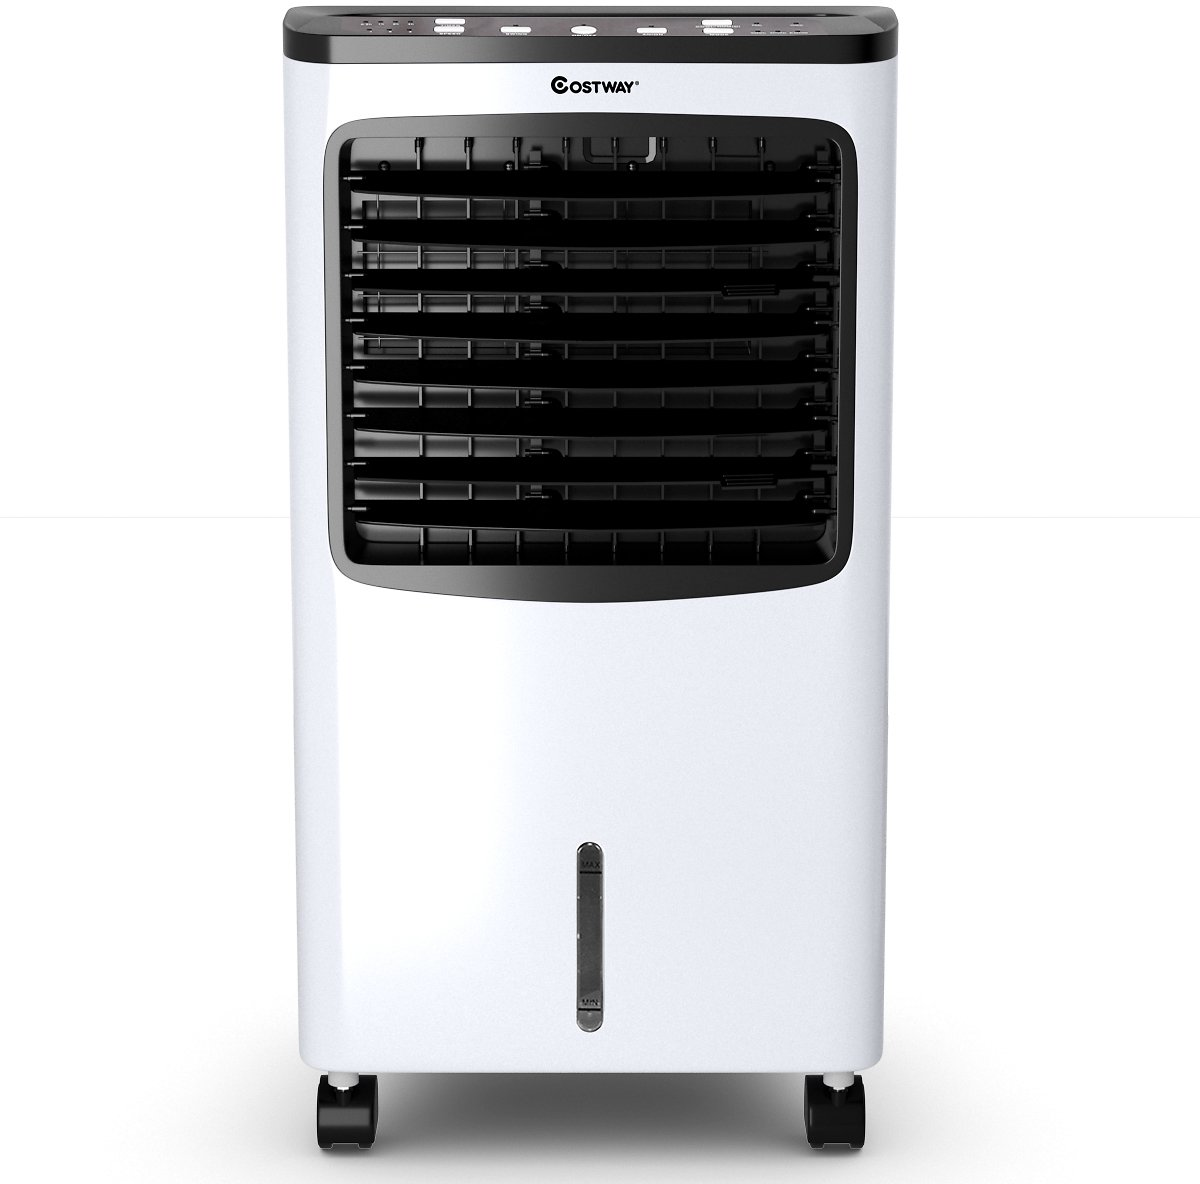 Costway Portable Air Conditioner Cooler Fan Filter Humidify Anion W/ Remote Control